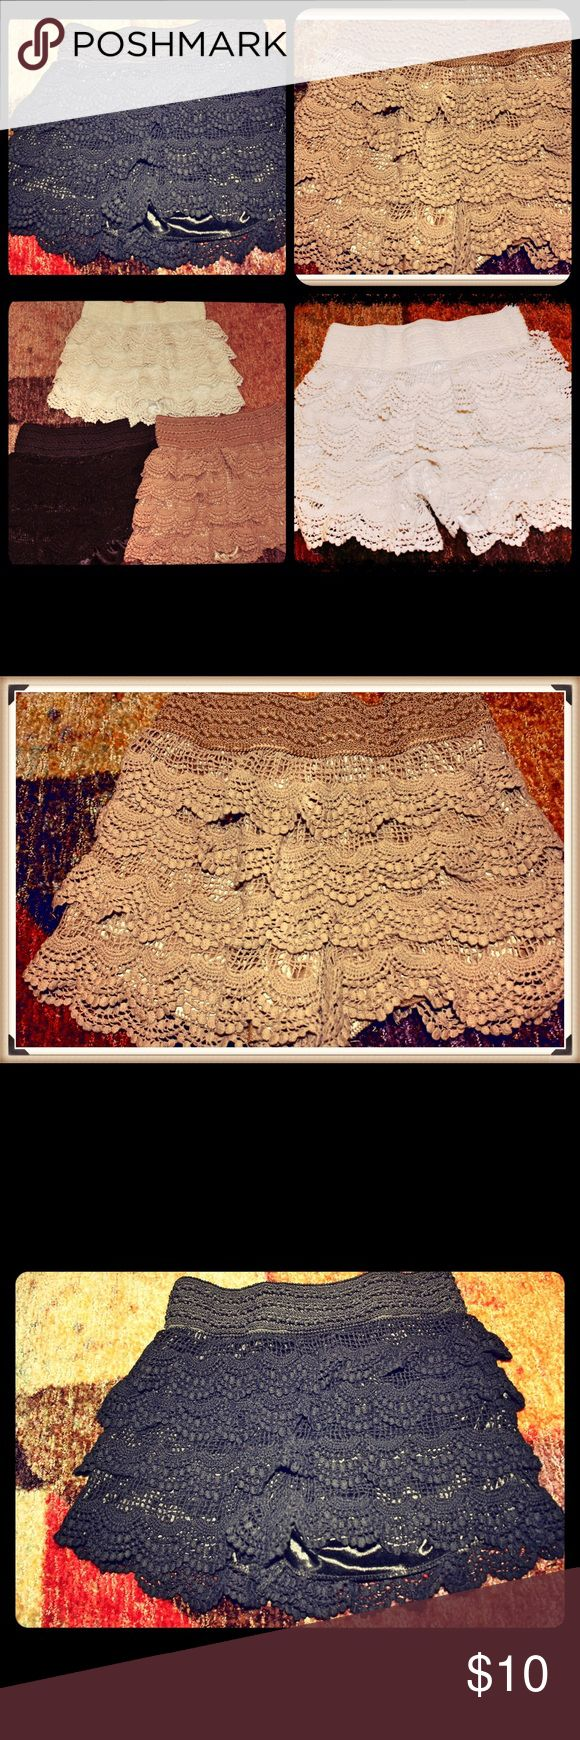 3 crochet shorts Super cute and stylish crochet shorts! Includes all 3.. tan, black &a white! 65% cotton/35% polyester Shorts